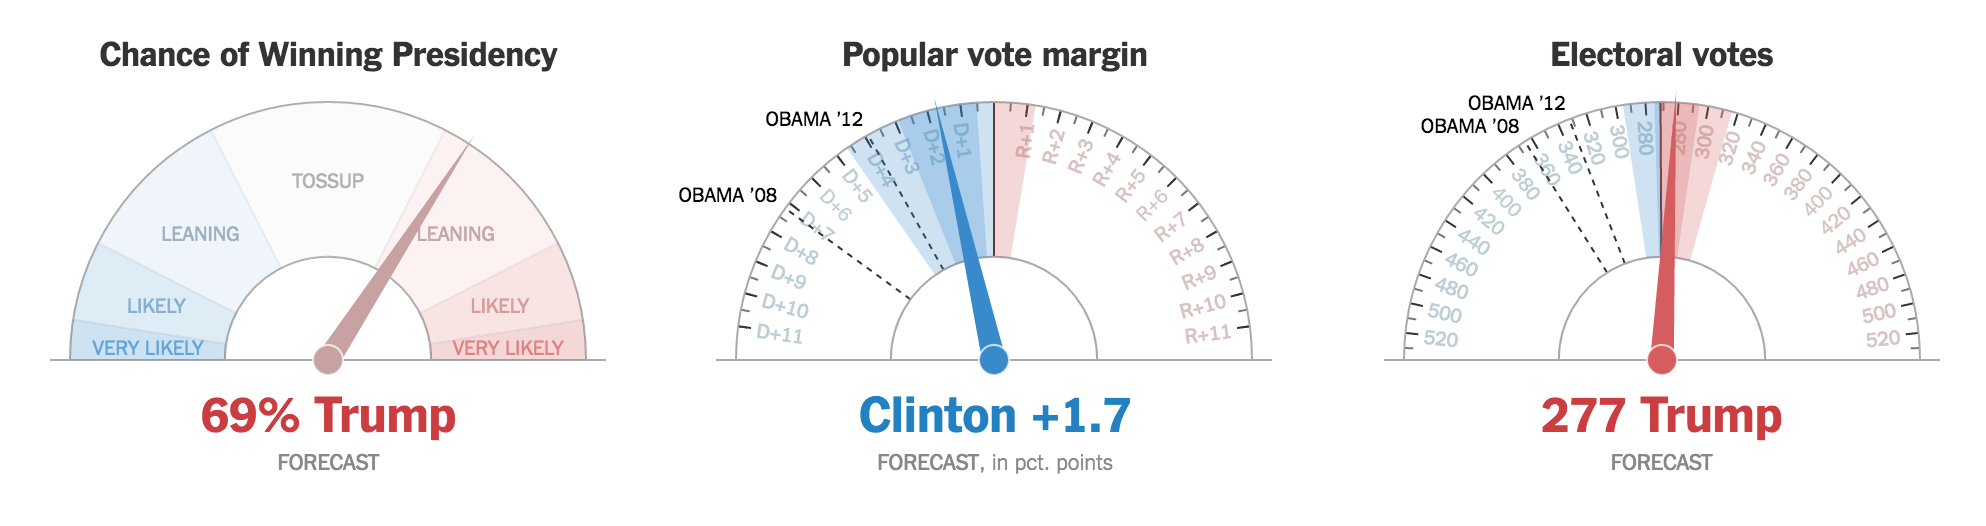 http://www.nytimes.com/elections/forecast/president?action=click&pgtype=Homepage&clickSource=story-heading&module=span-abc-region&region=span-abc-region&WT.nav=span-abc-region